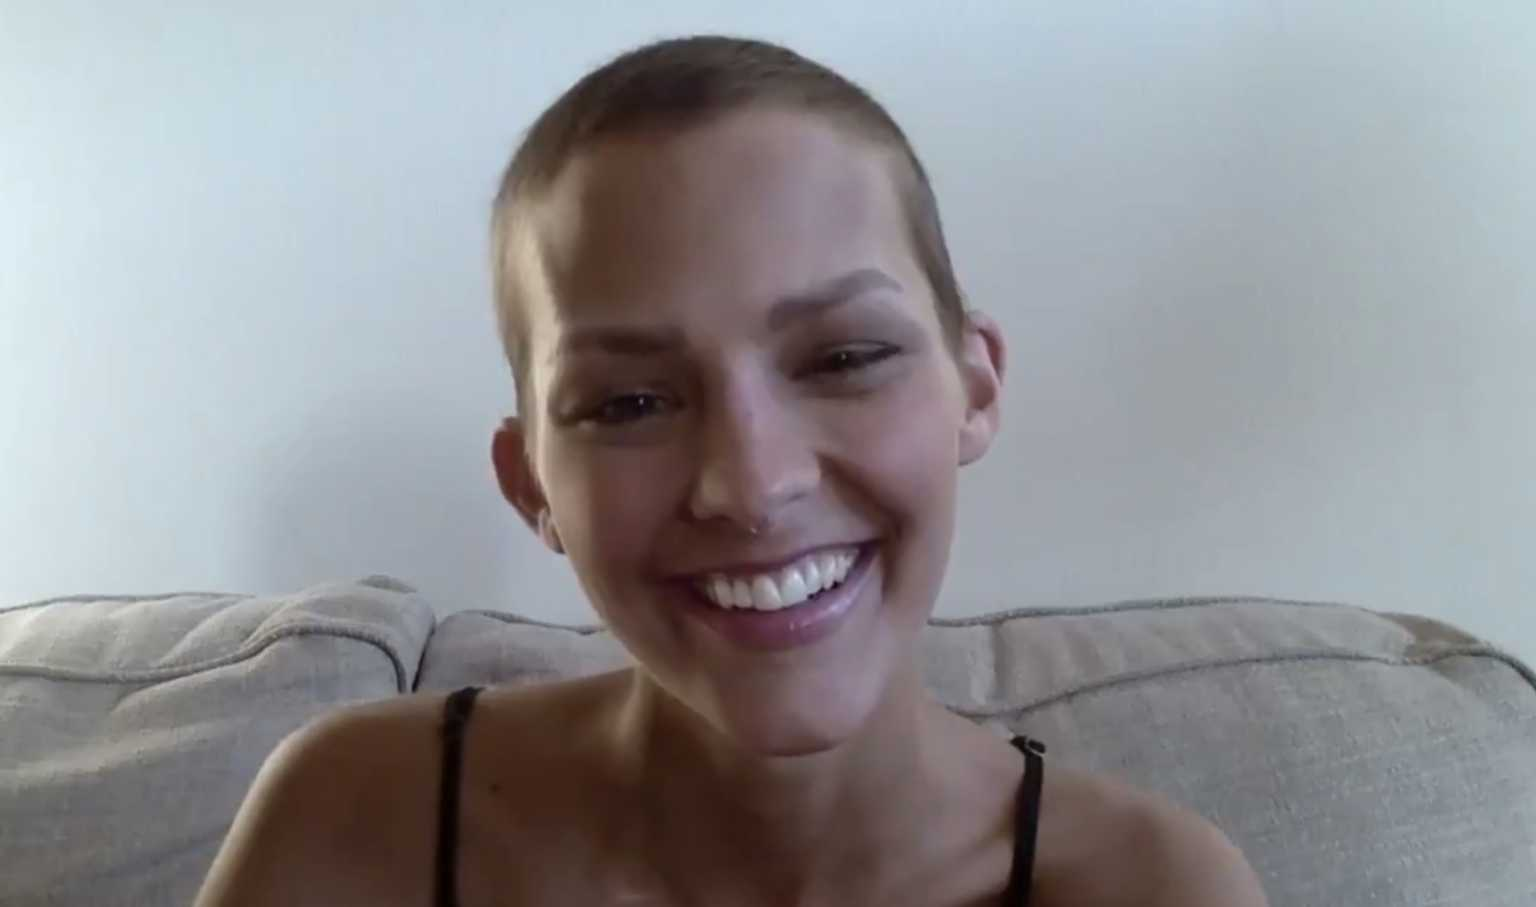 'AGT' Star Nightbirde Shares Inspiring Message Amid Cancer Battle: 'We Are the Heroes'